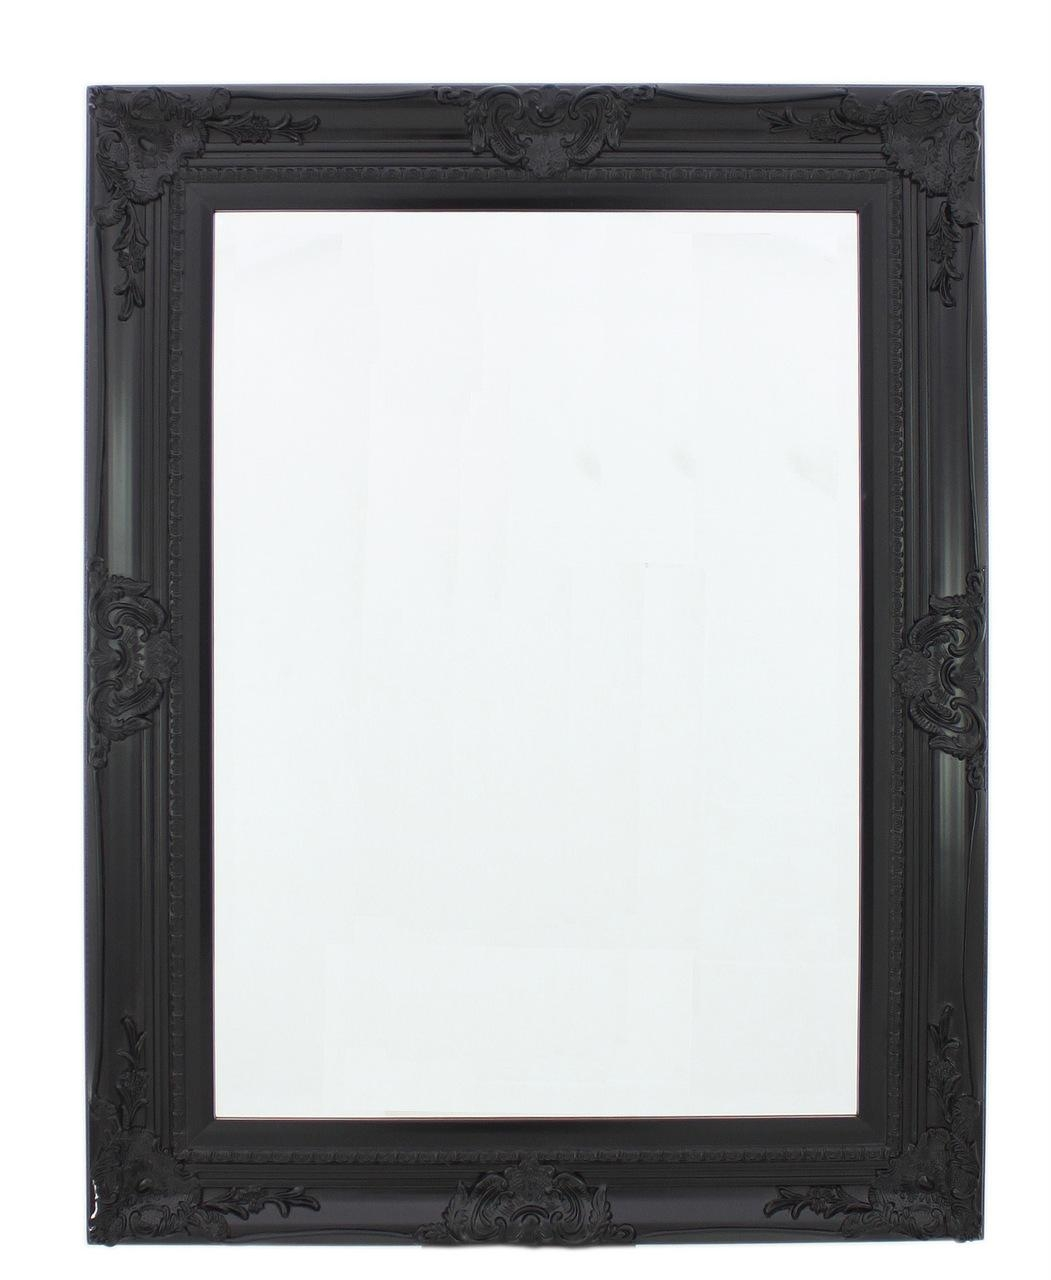 Mirrors : Pure Comfort, Pure Comfort Furniture With Regard To Baroque Black Mirror (Image 16 of 20)